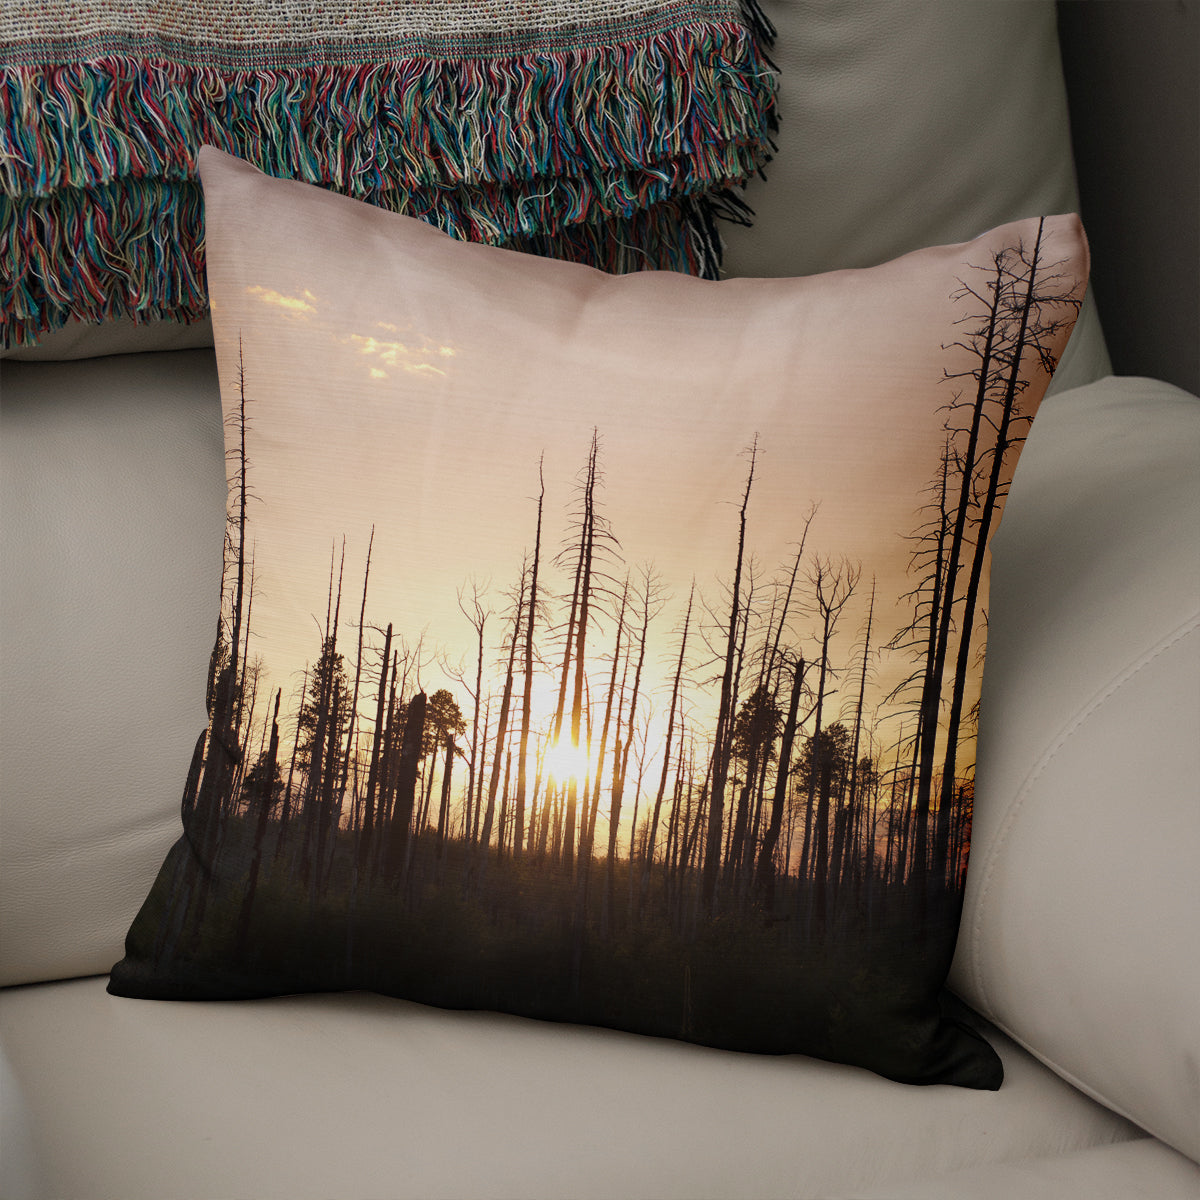 Grand Canyon Sunset Decorative Throw Pillow - 5 Sizes